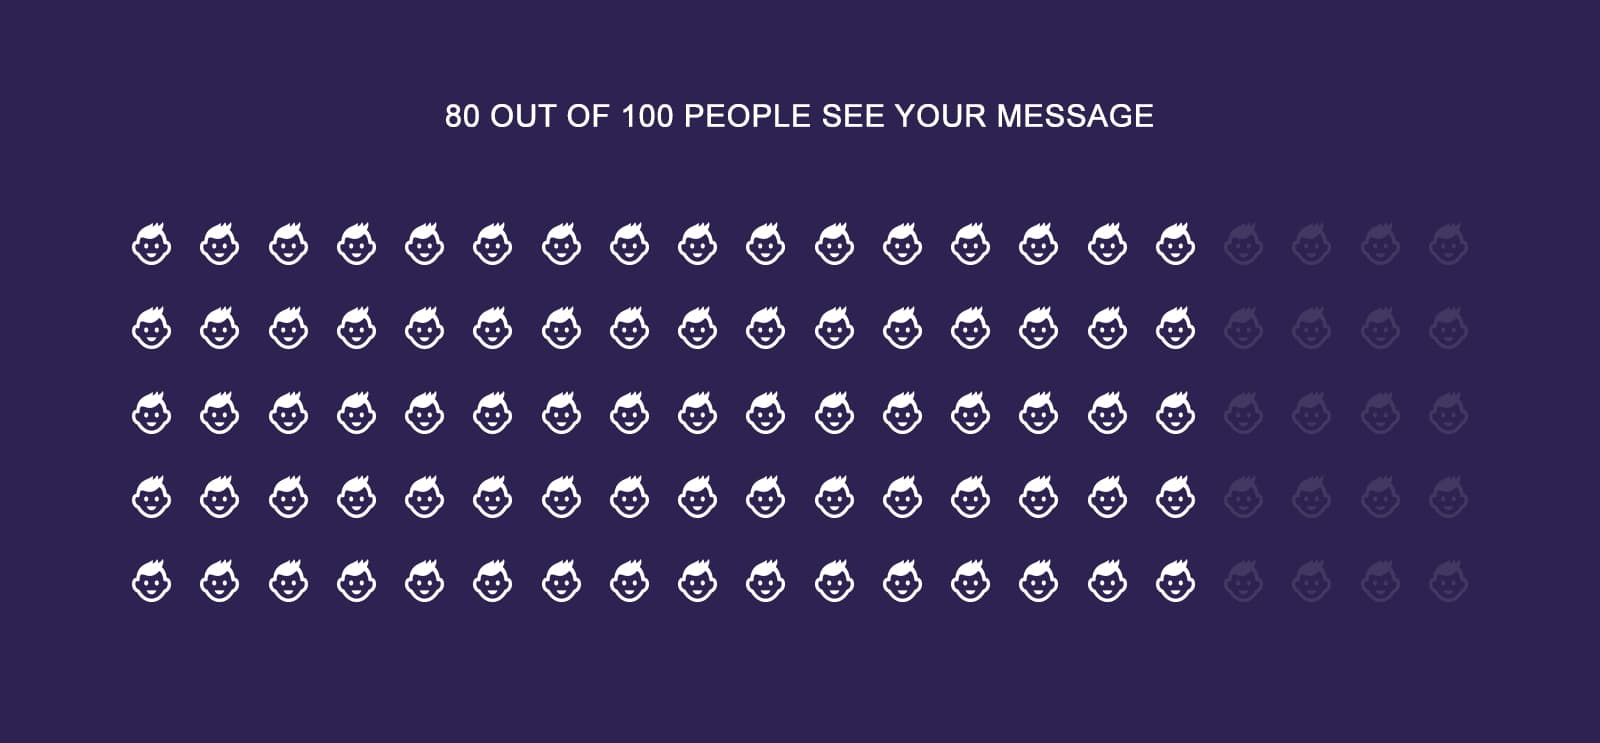 80 out of 100 people will see your message